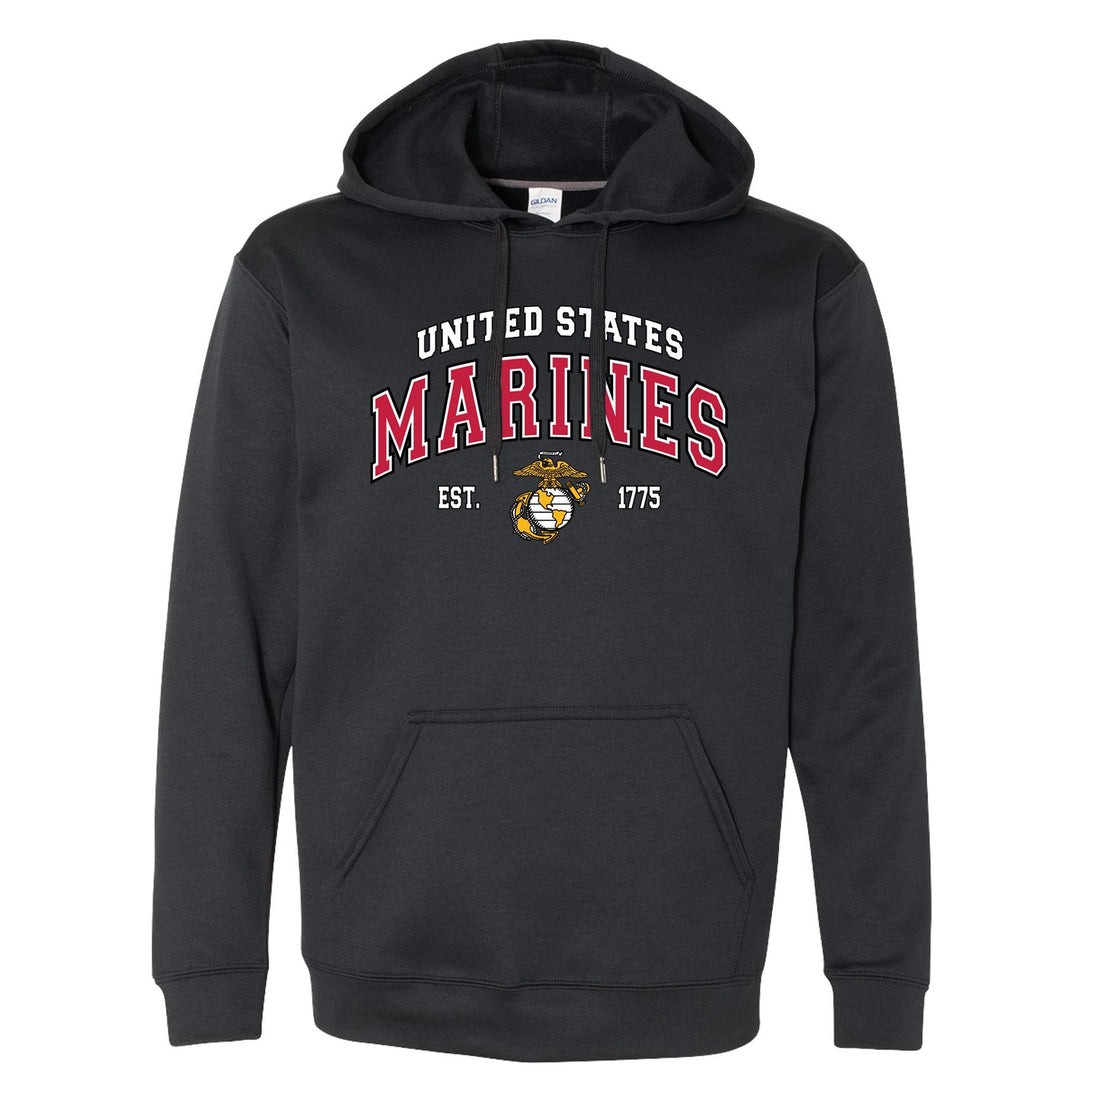 COMBAT CHARGED DRI-FIT PERFORMANCE POLY US MARINES HOODIE